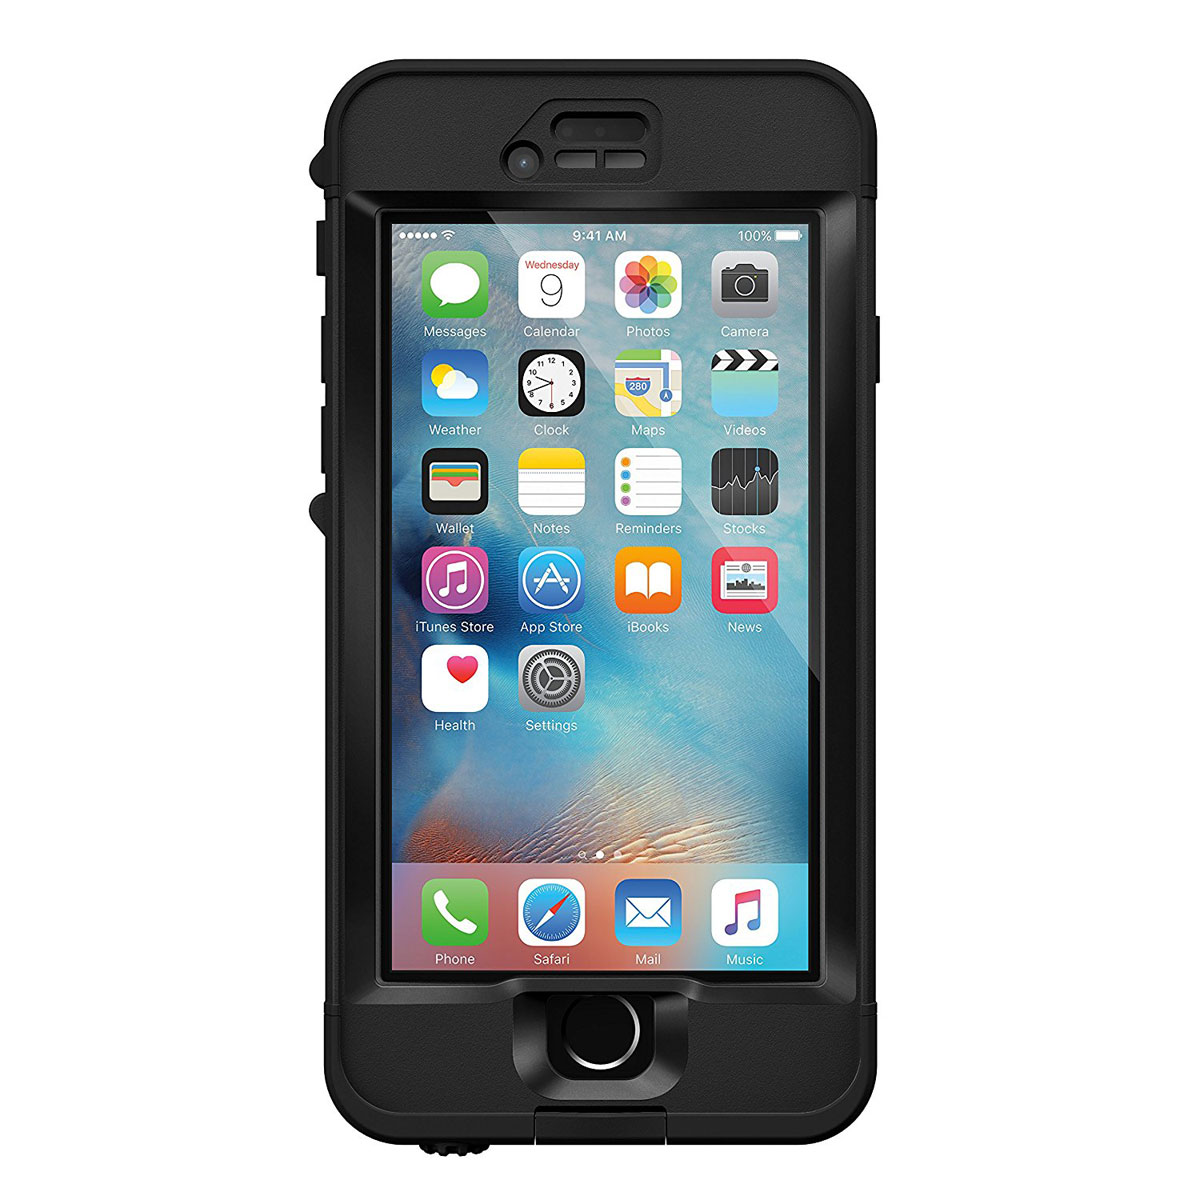 lifeproof nuud noir iphone 6s plus etui t l phone lifeproof sur. Black Bedroom Furniture Sets. Home Design Ideas